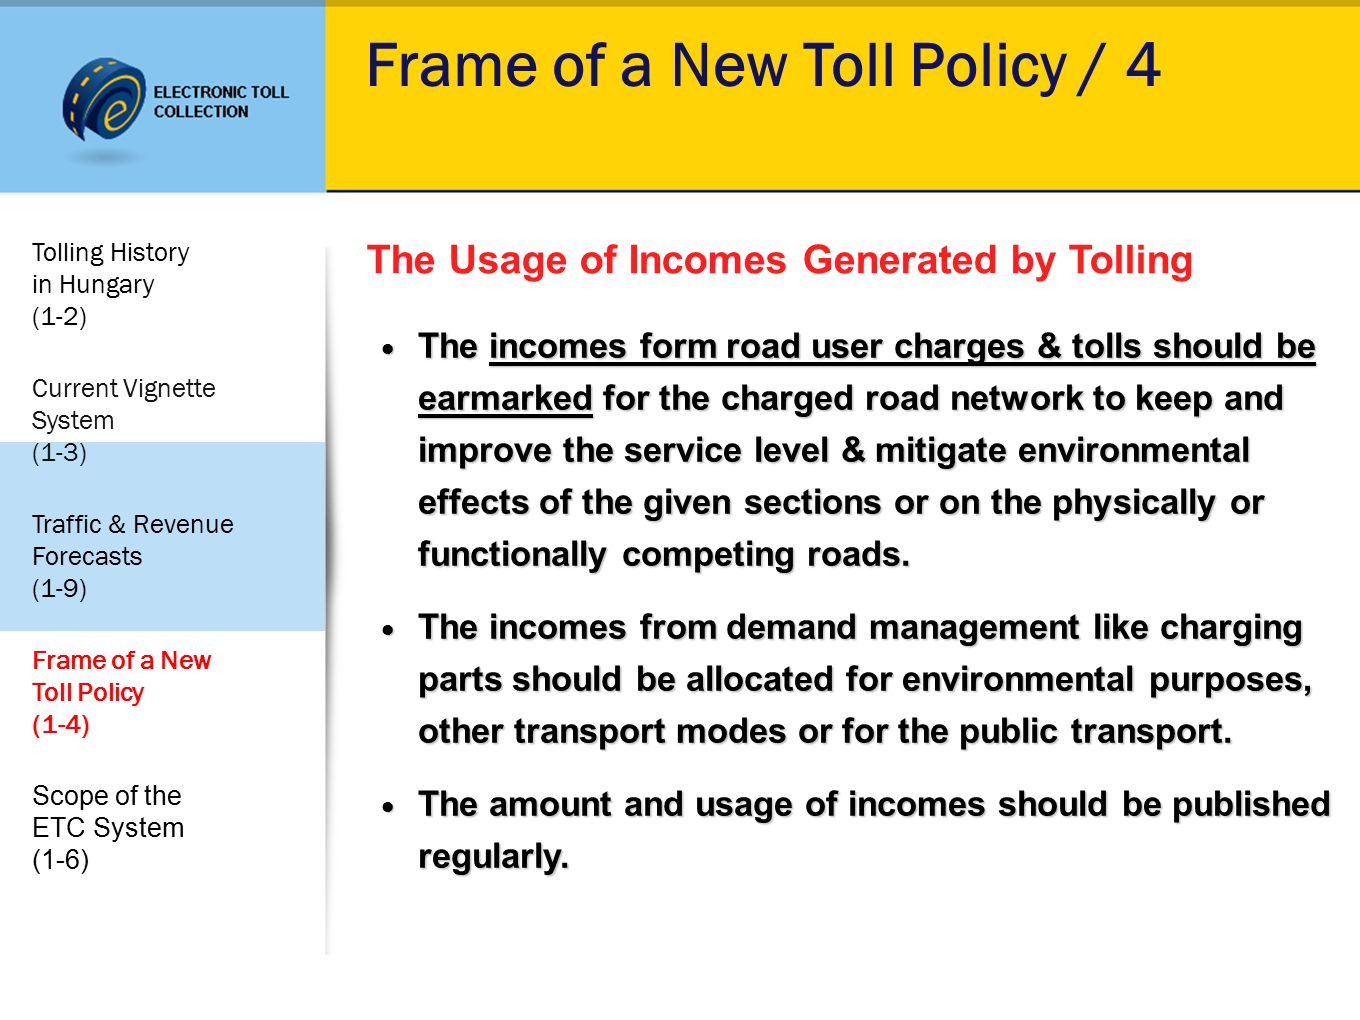 Frame of a New Toll Policy / 4 The Usage of Incomes Generated by Tolling The incomes form road user charges & tolls should be earmarked for the charged road network to keep and improve the service level & mitigate environmental effects of the given sections or on the physically or functionally competing roads.